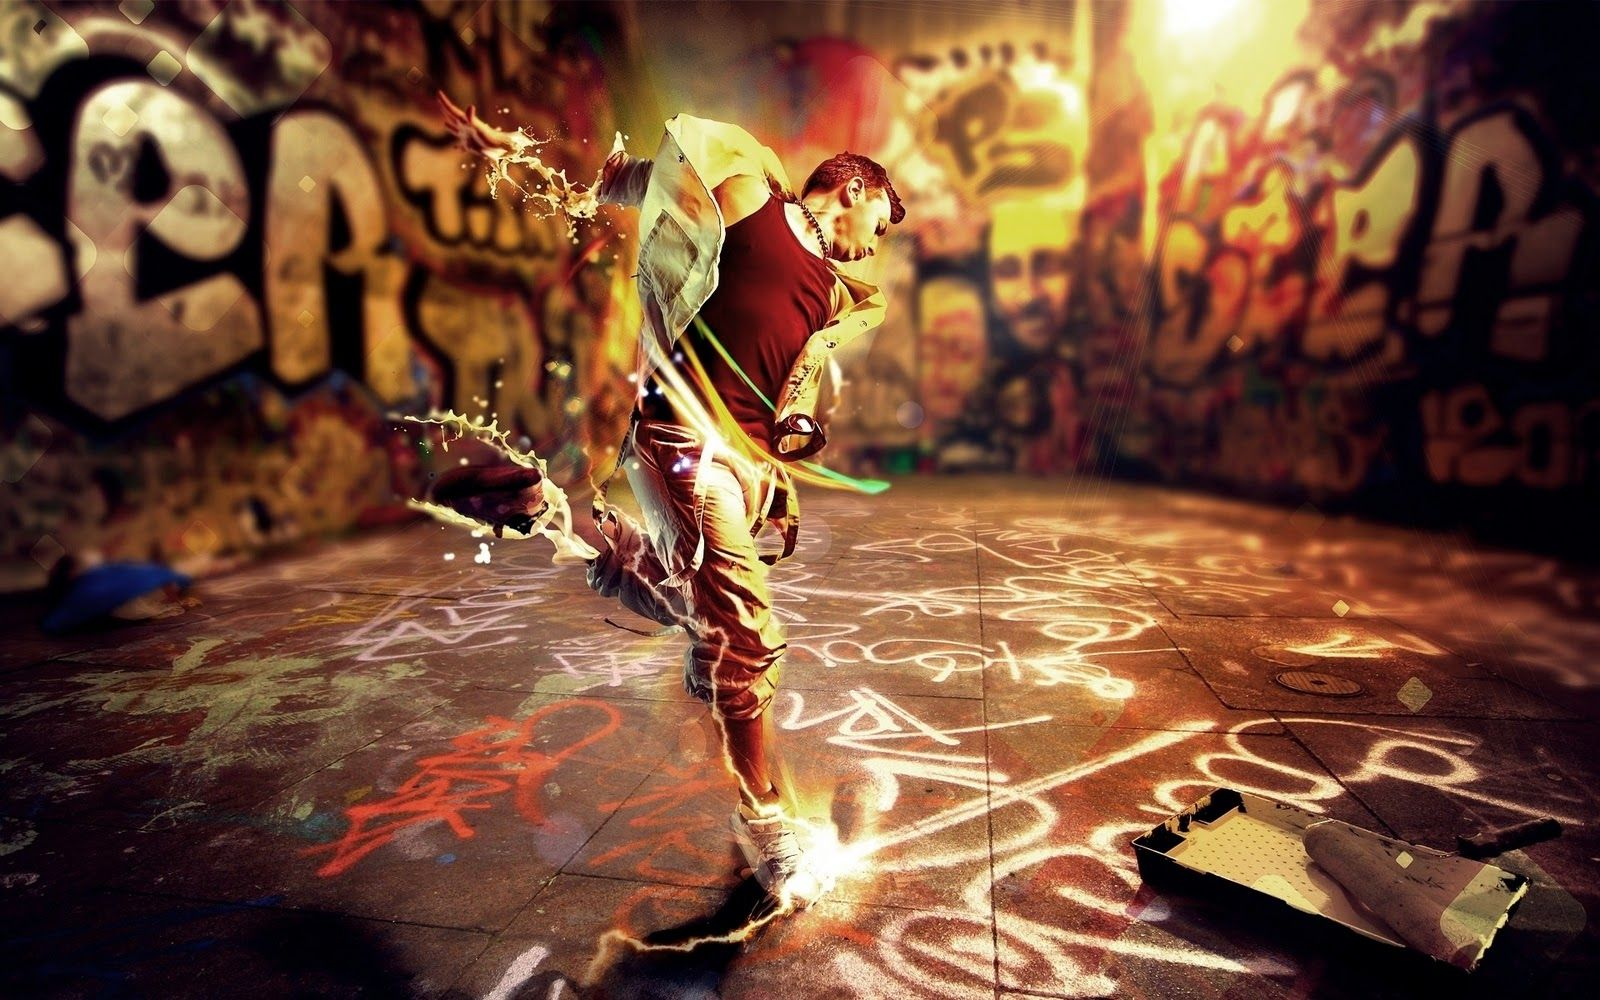 Wallpaper graffiti best graffiti wallpapers wide high definition wallpaper graffiti best graffiti wallpapers wide high definition 19201080 graffiti hd backgrounds voltagebd Images